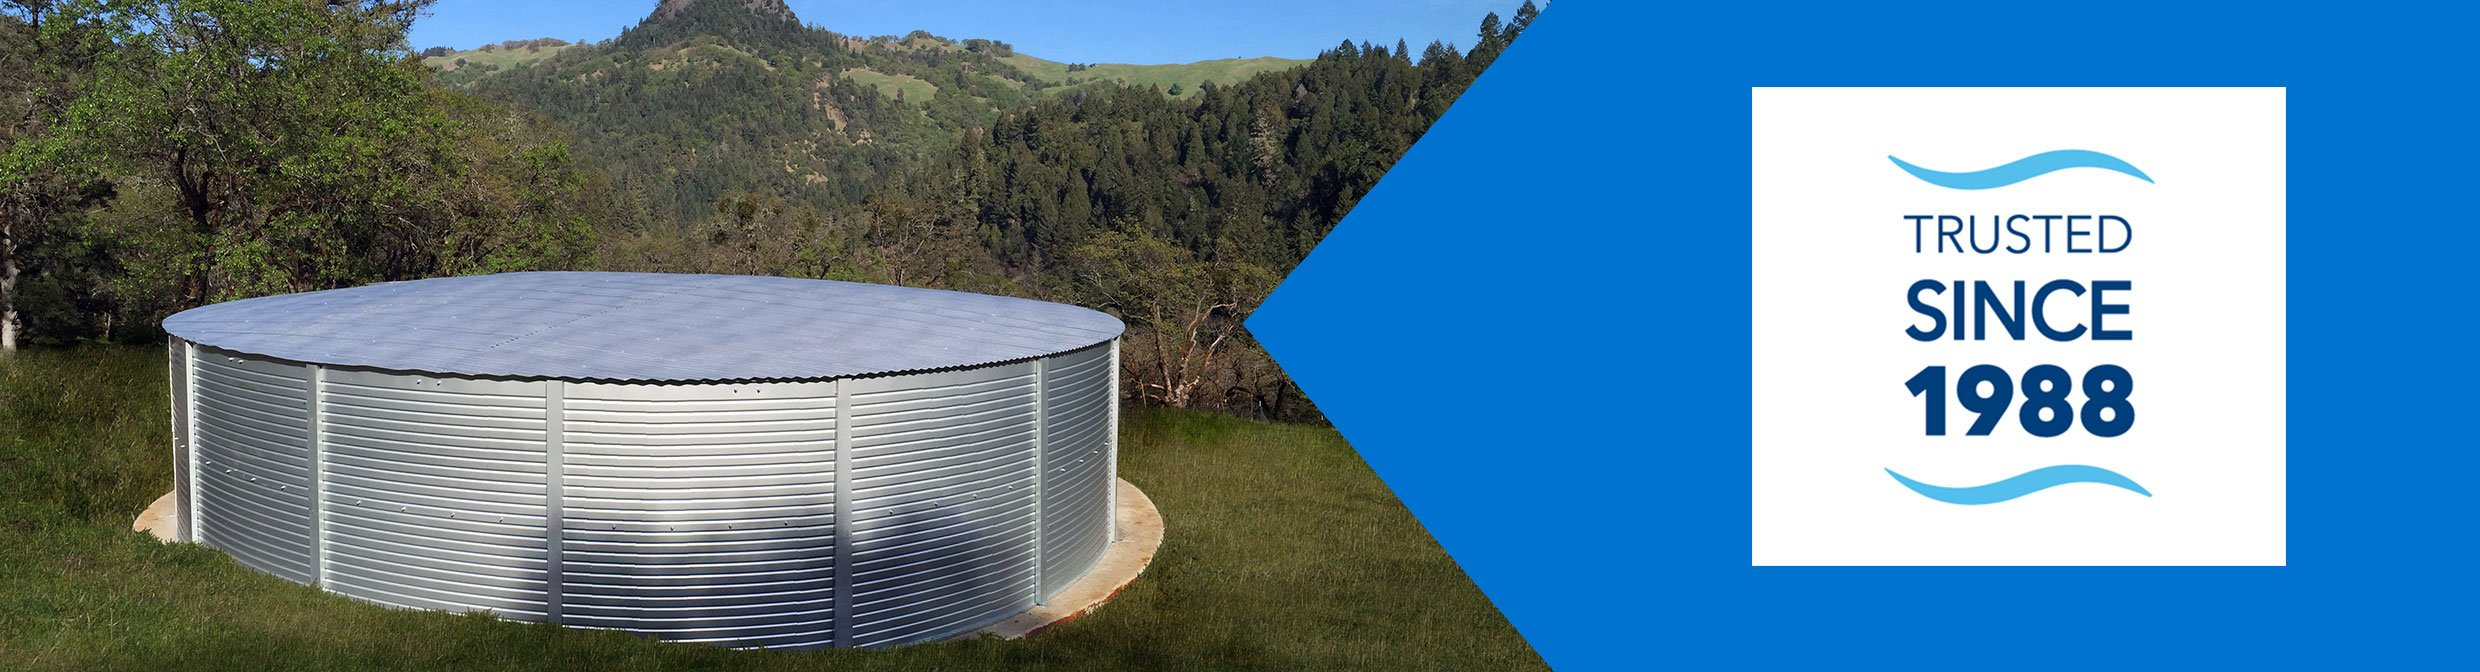 Pioneer Water Tanks Trusted Since 1988